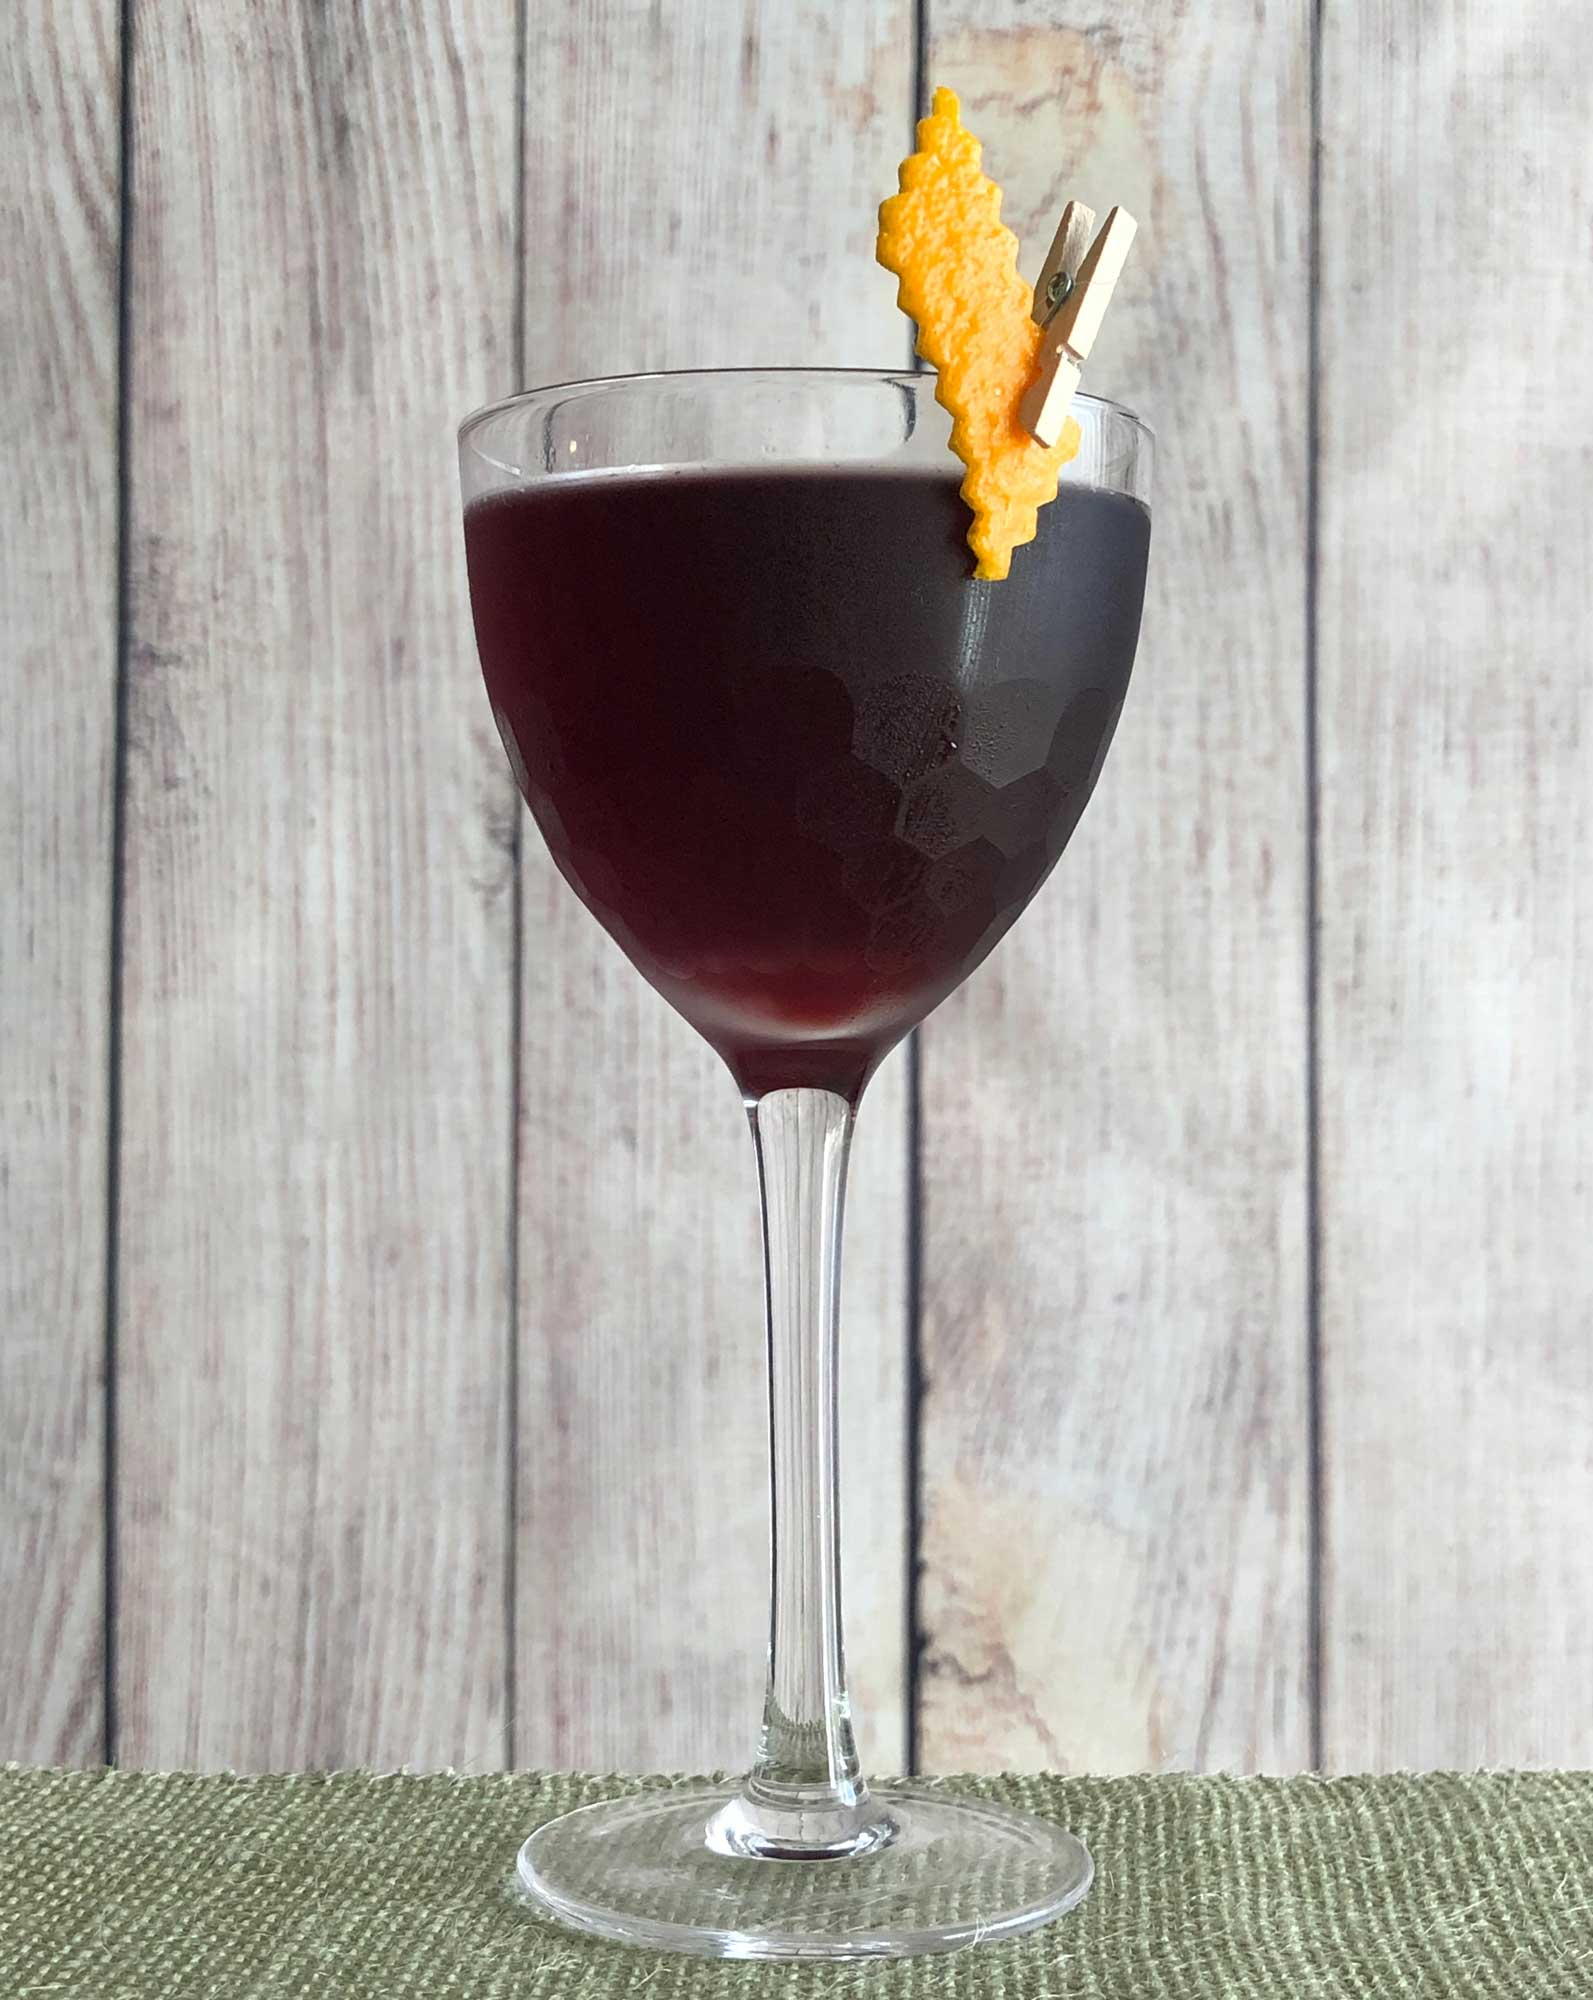 An example of the Aunt Cathy's Old Time Potion, the mixed drink (cocktail) featuring dry red wine, Averell Damson Plum Gin Liqueur, Campari, orange bitters, and Fee Brothers Black Walnut Bitters; photo by Lee Edwards